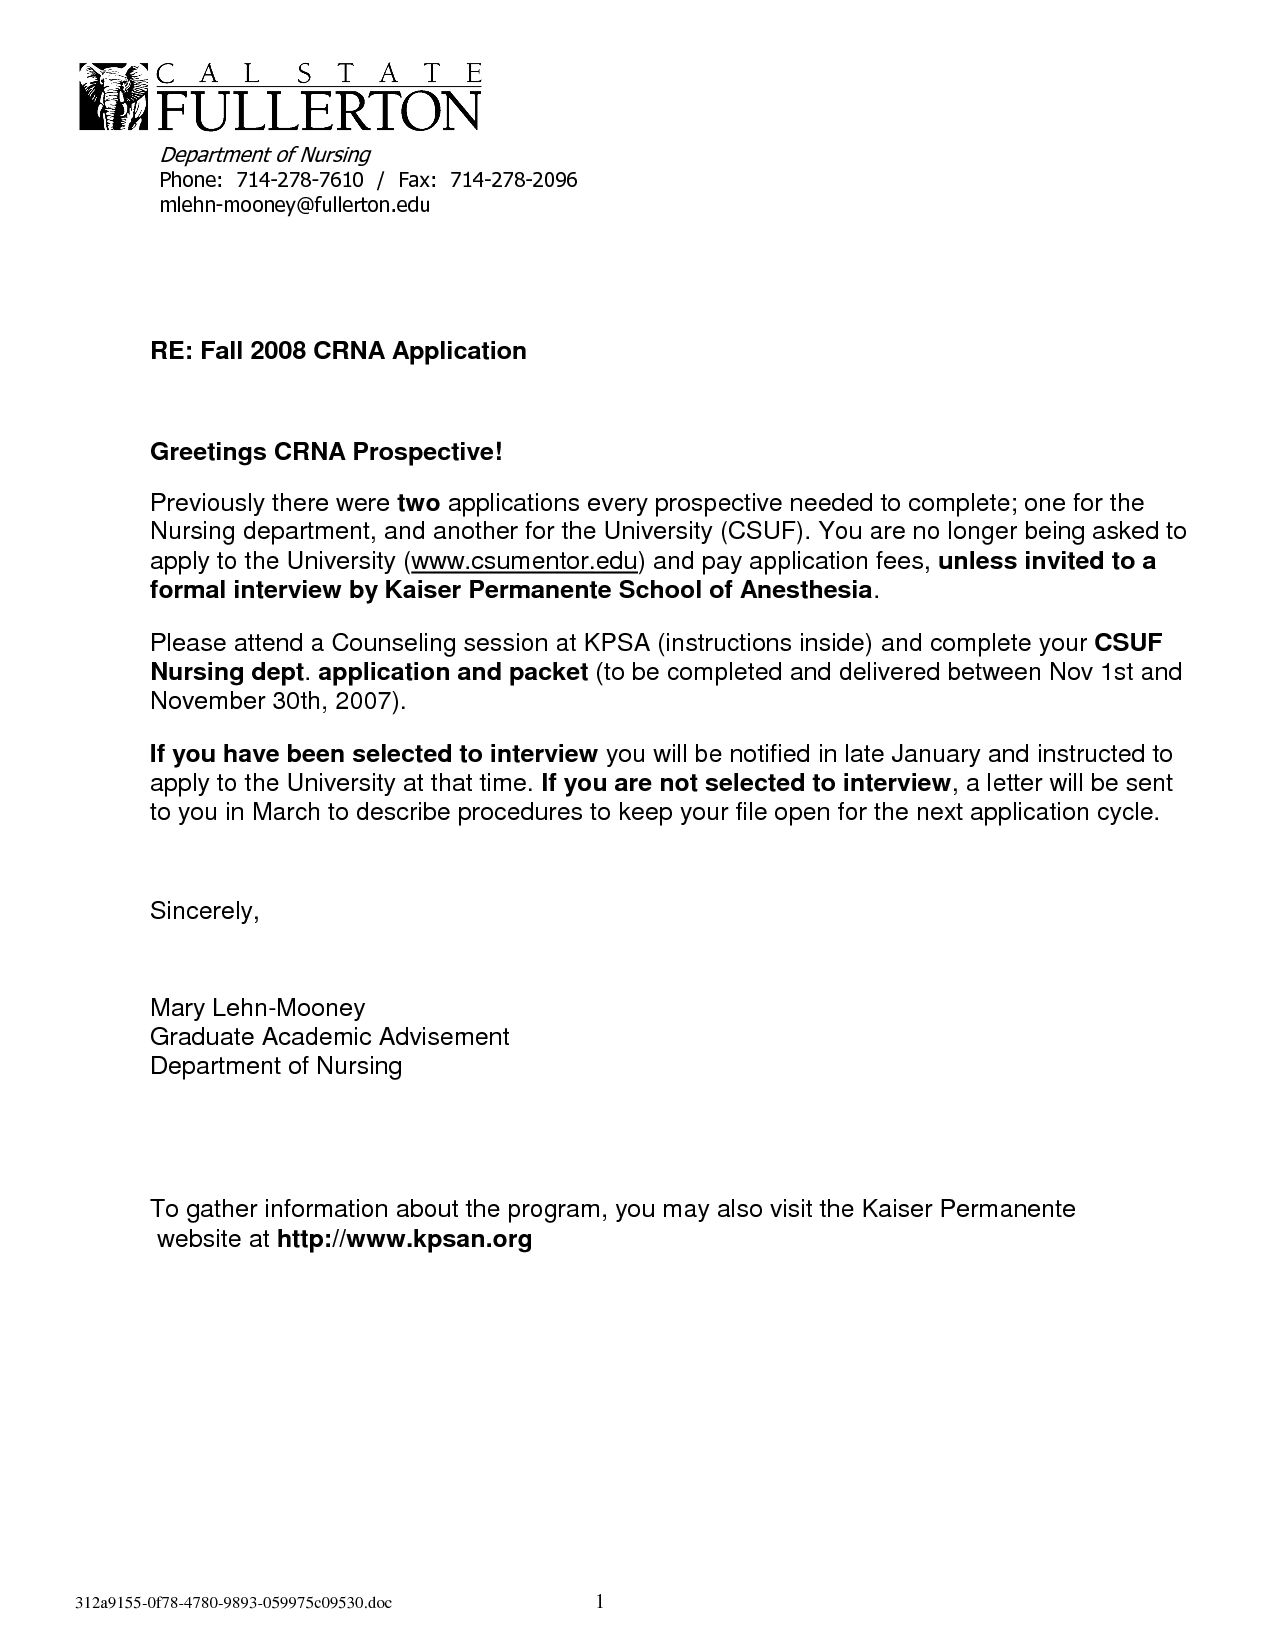 Nursing School Recommendation Letter From Employer Cover News To